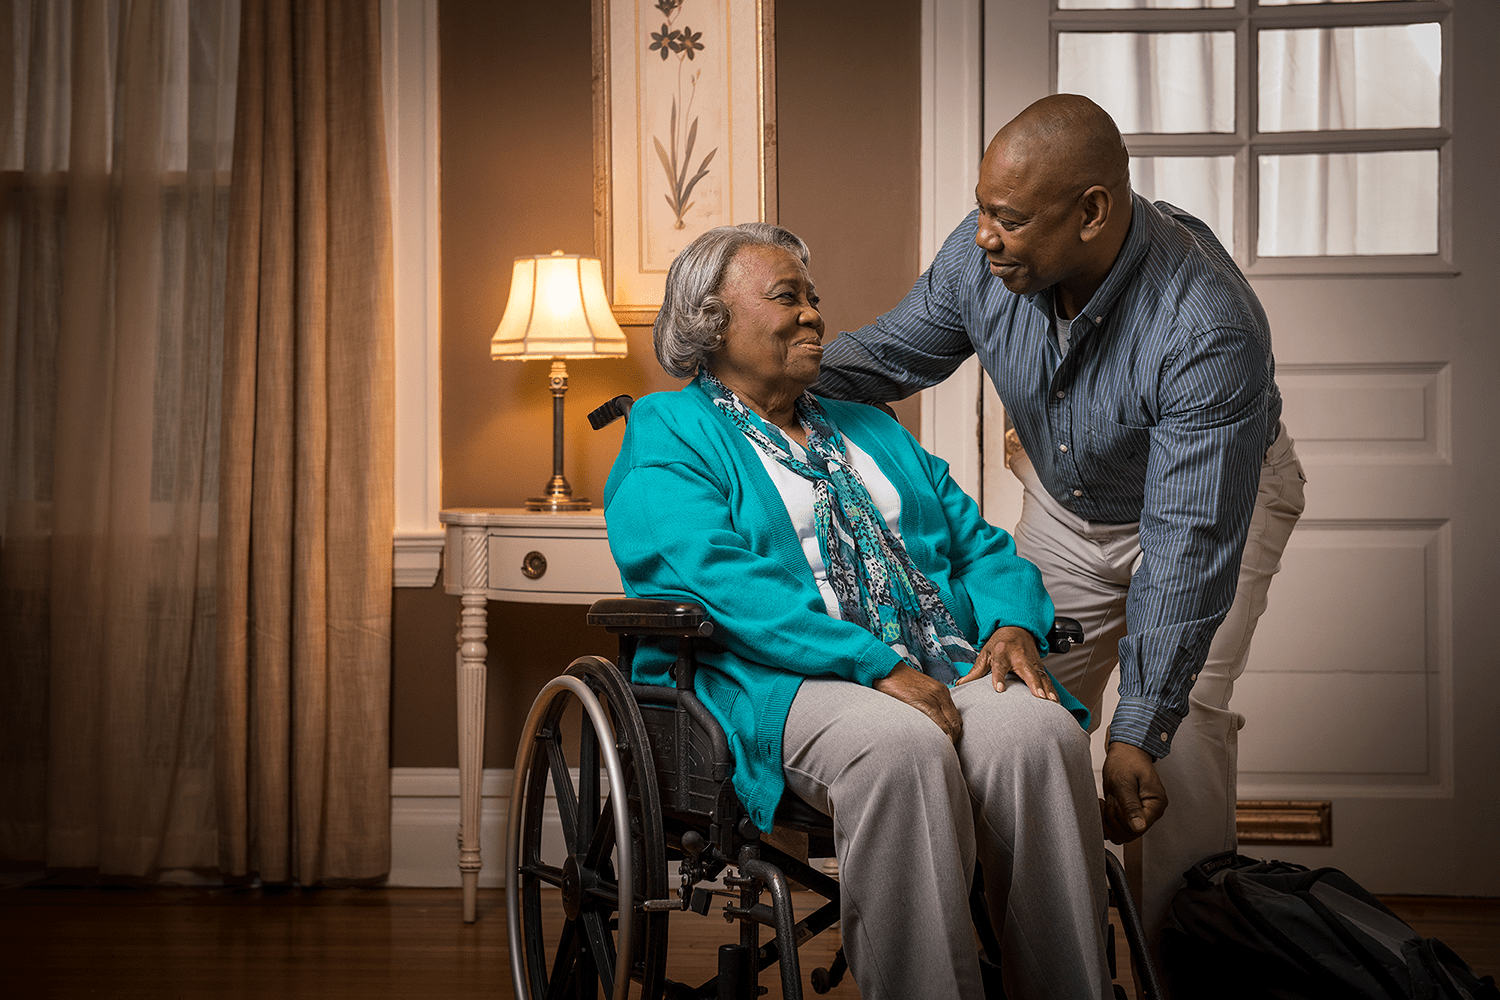 CAREAct_AfricanAmericanMomSon1_HorzWideMoment_2018_small_1540222168220.png